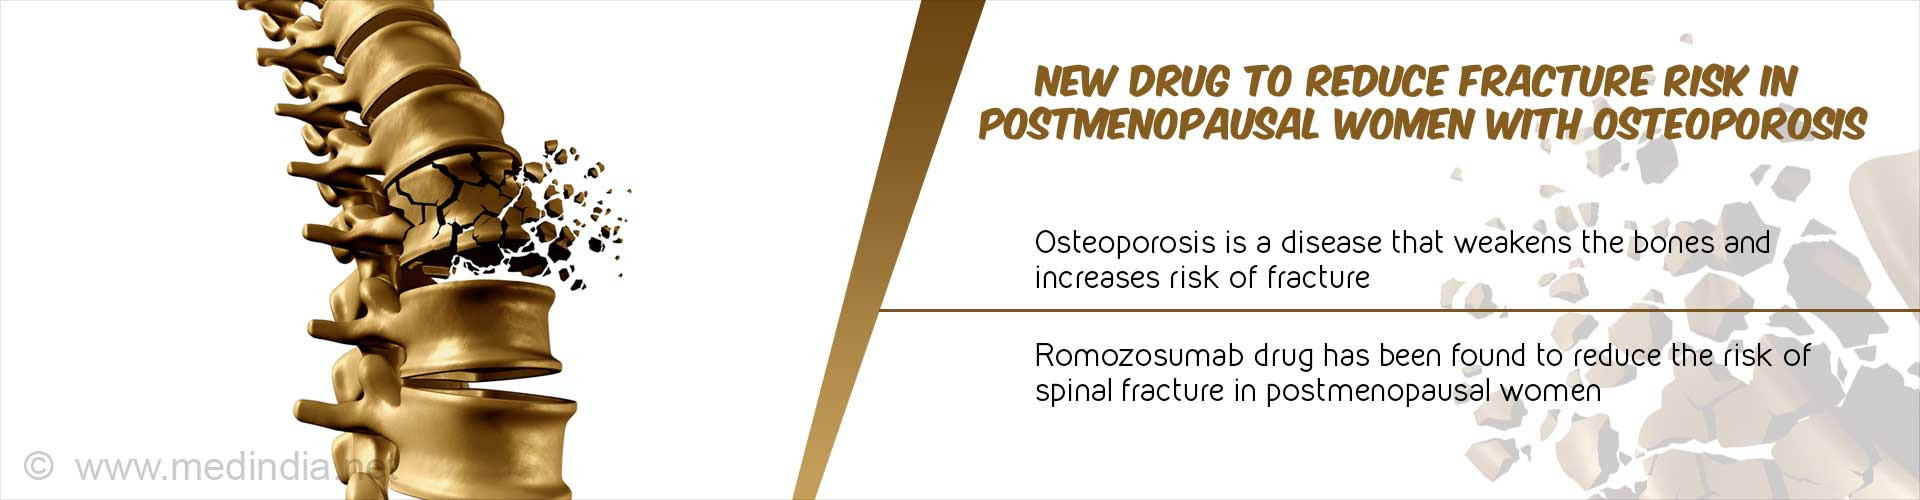 Postmenopausal Osteoporosis: Romosozumab Drug Could Reduce Spine Fracture Risk